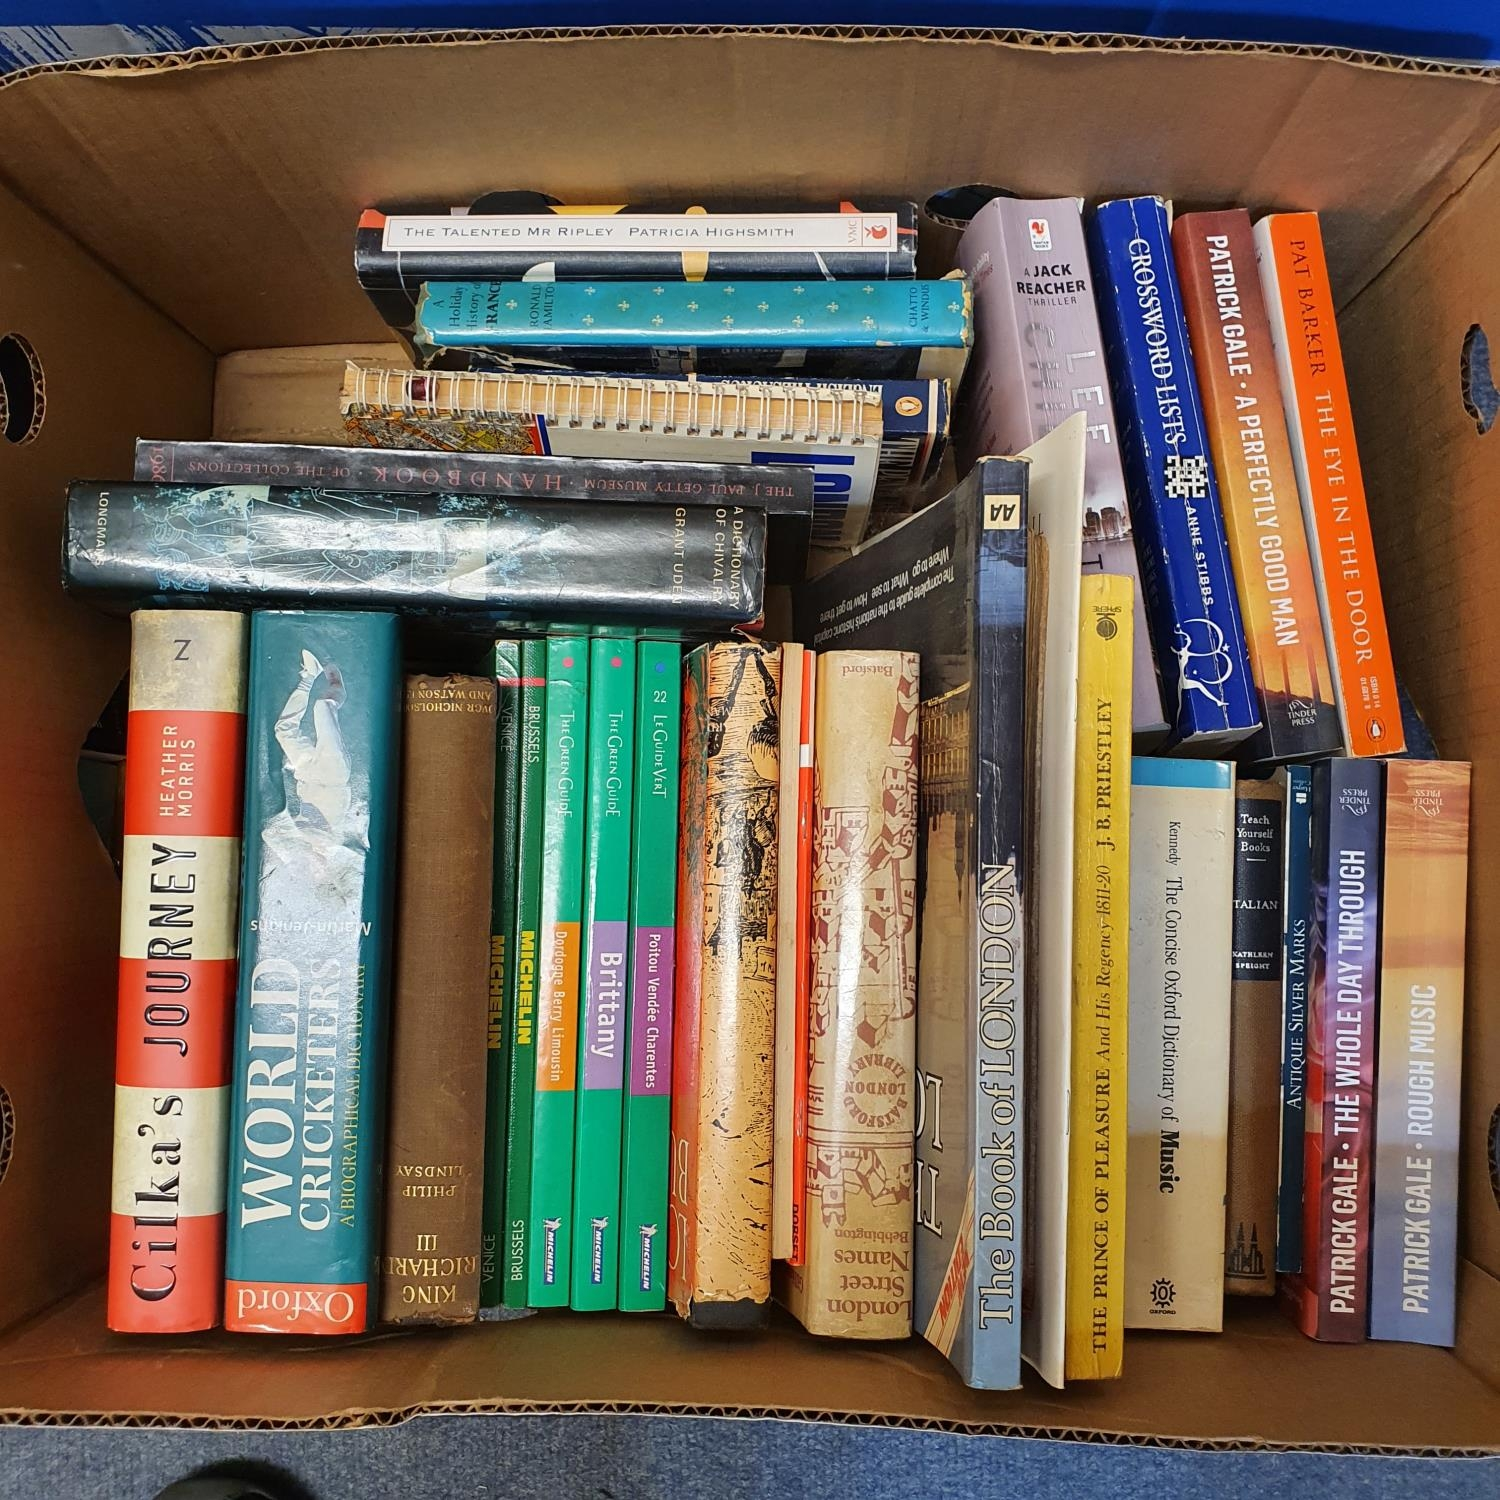 Hibbert (Christopher) London, and a large group of other books (19 boxes) - Image 11 of 21